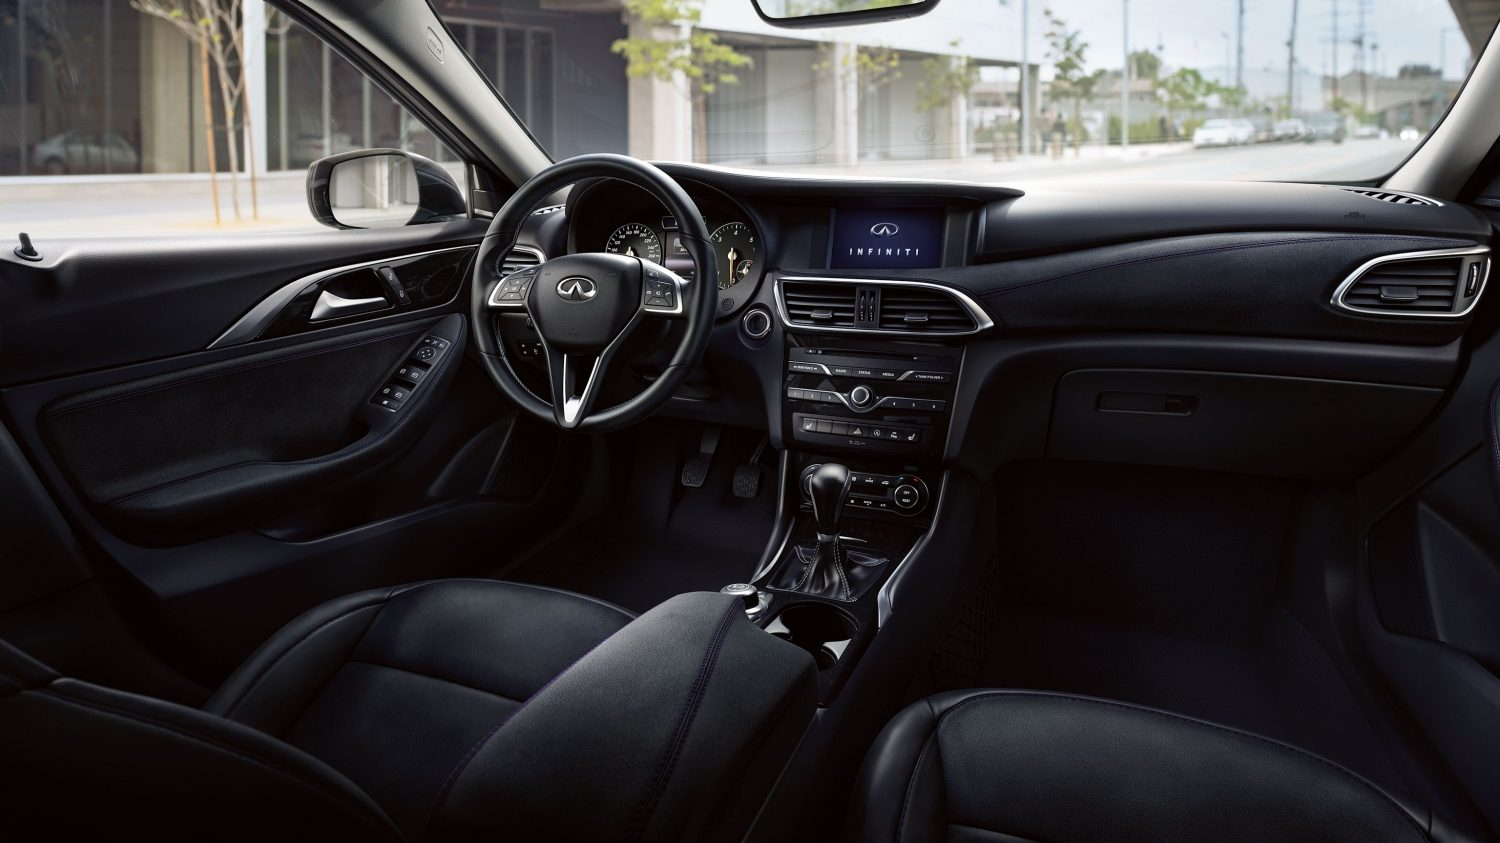 2016 Infiniti Q30 Active Compact Interior | Black Leather